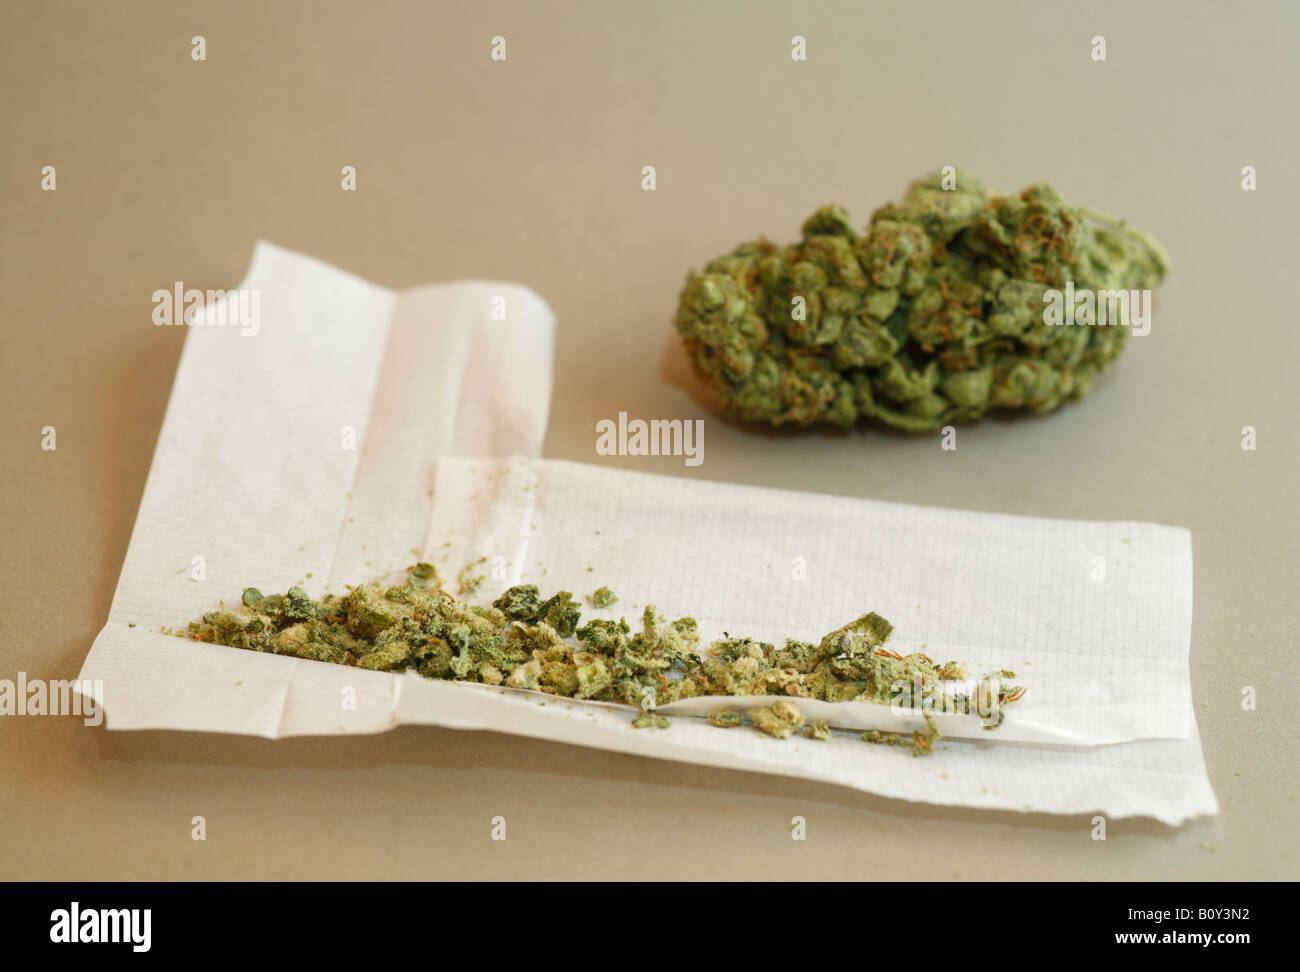 a-bud-of-skunk-cannabis-and-a-joint-bein